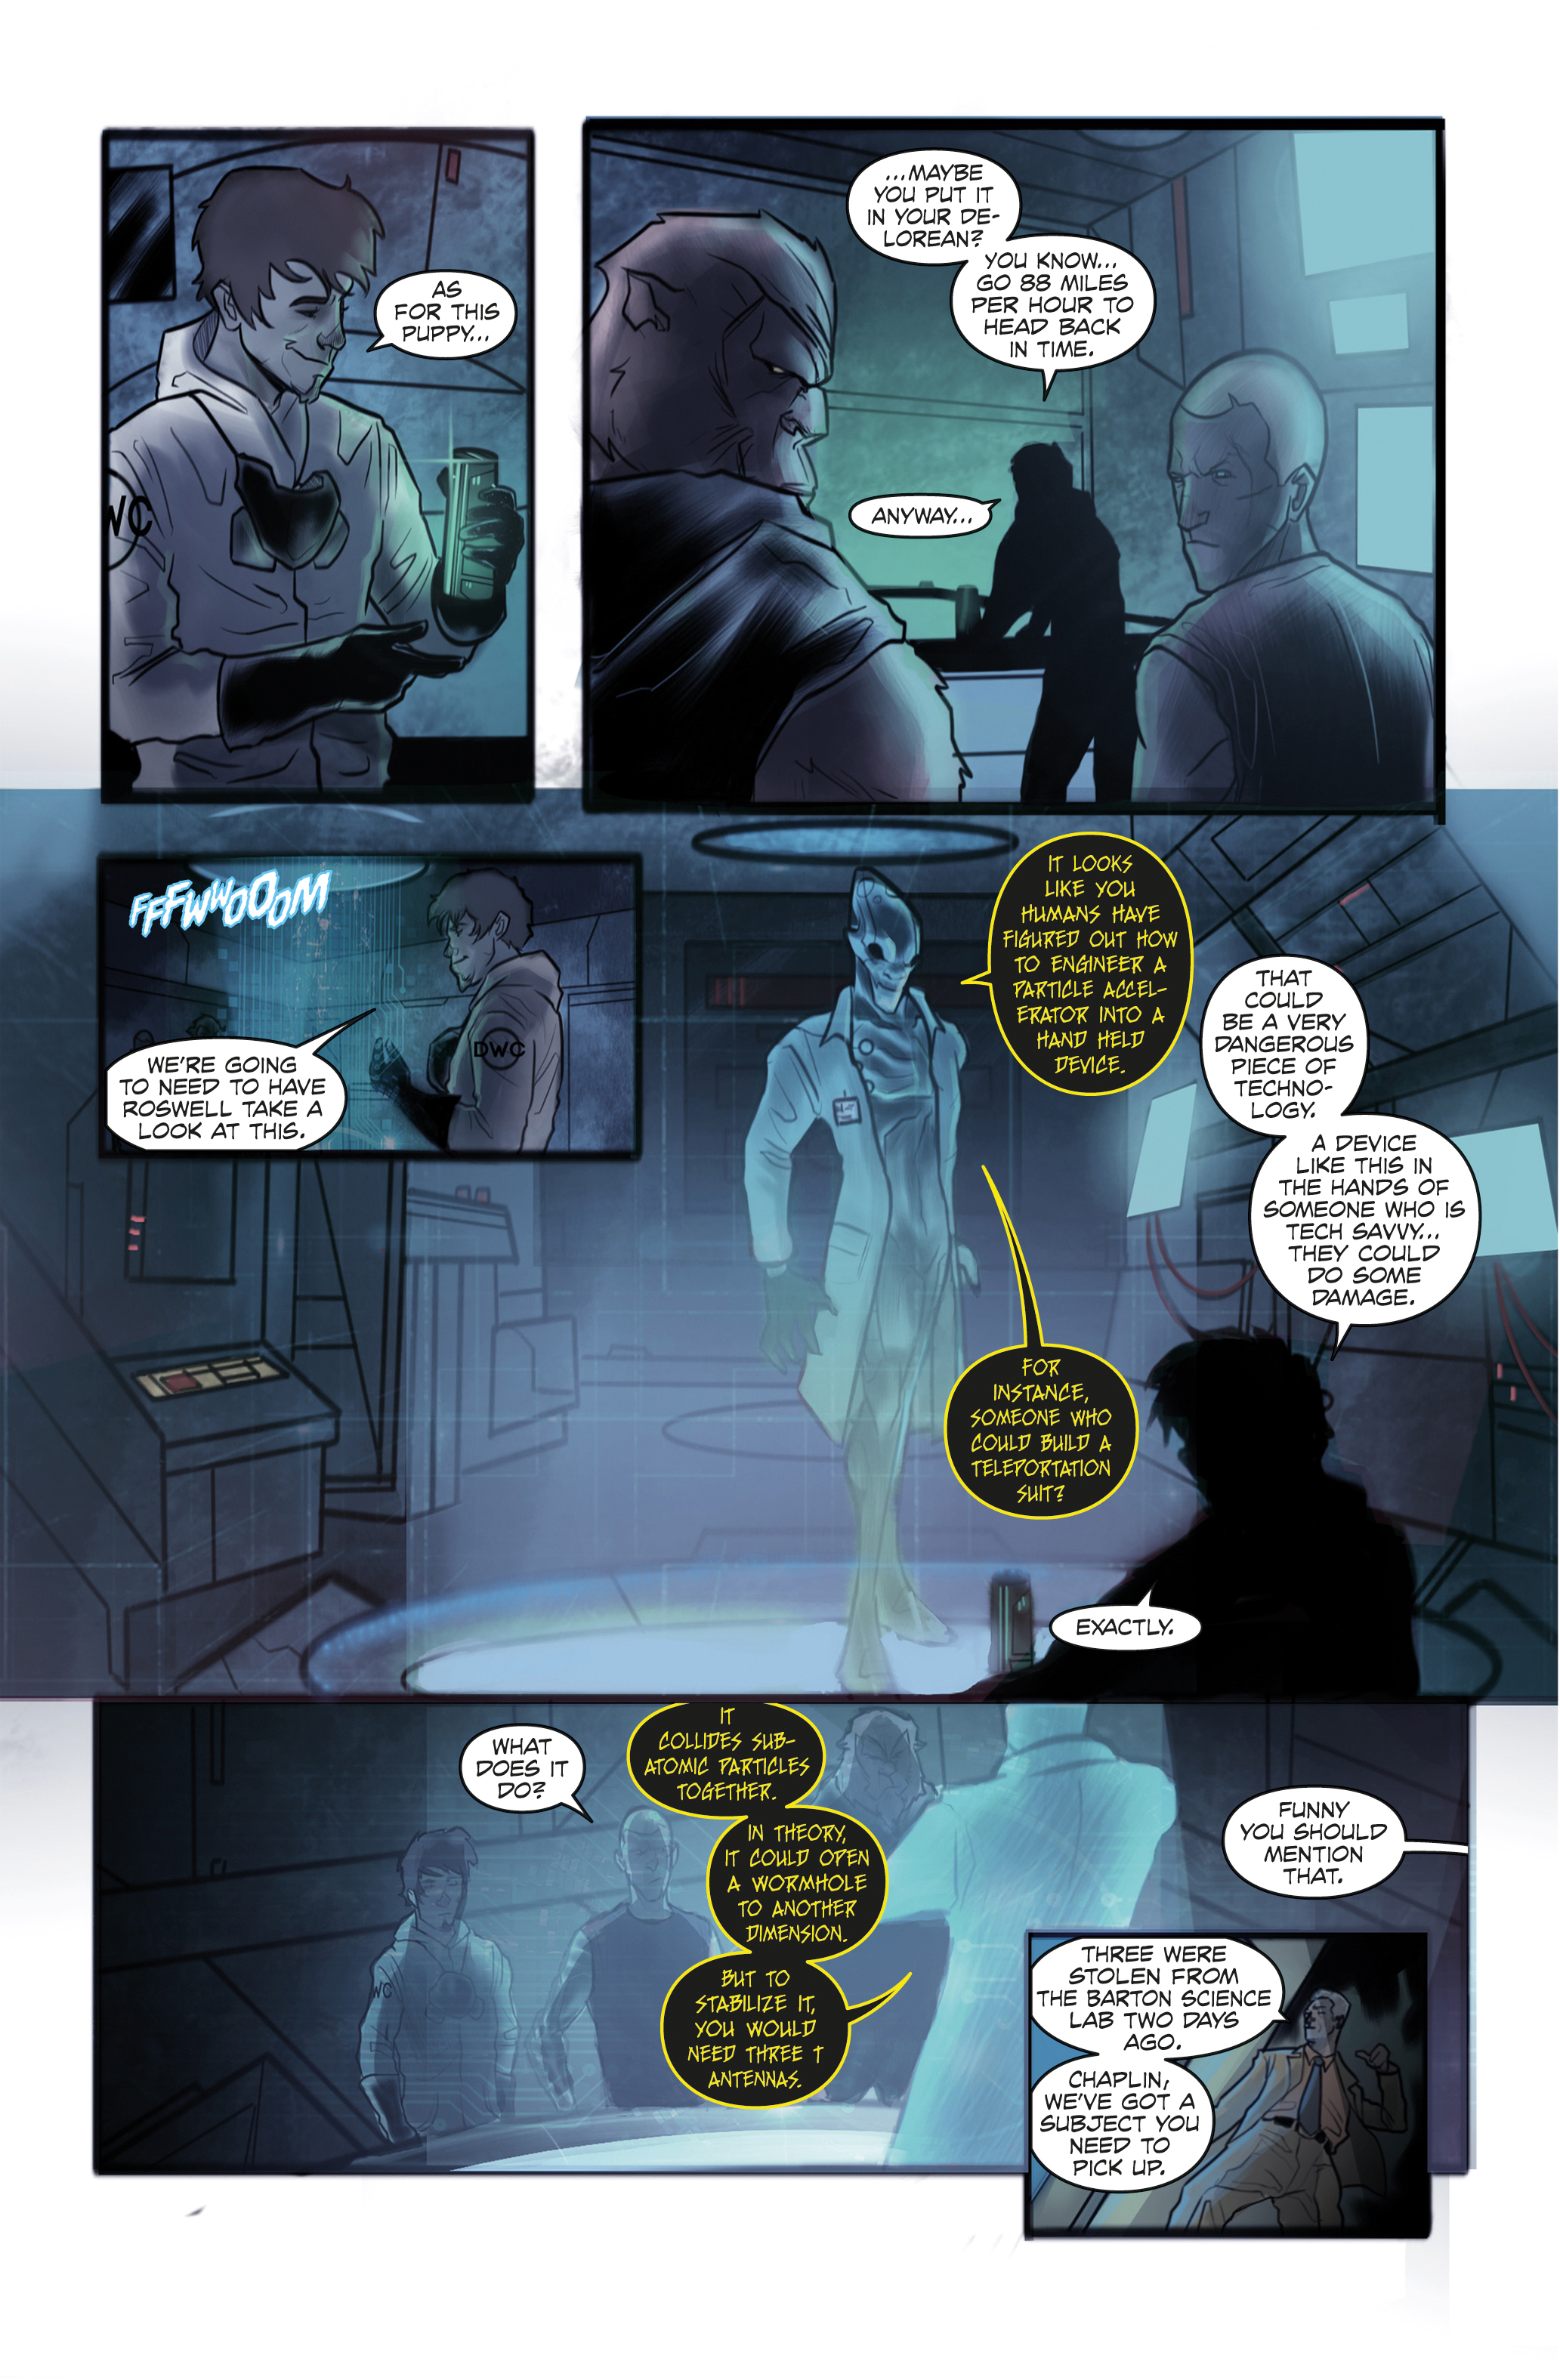 Shelter Division #1 Page 10-01.jpg